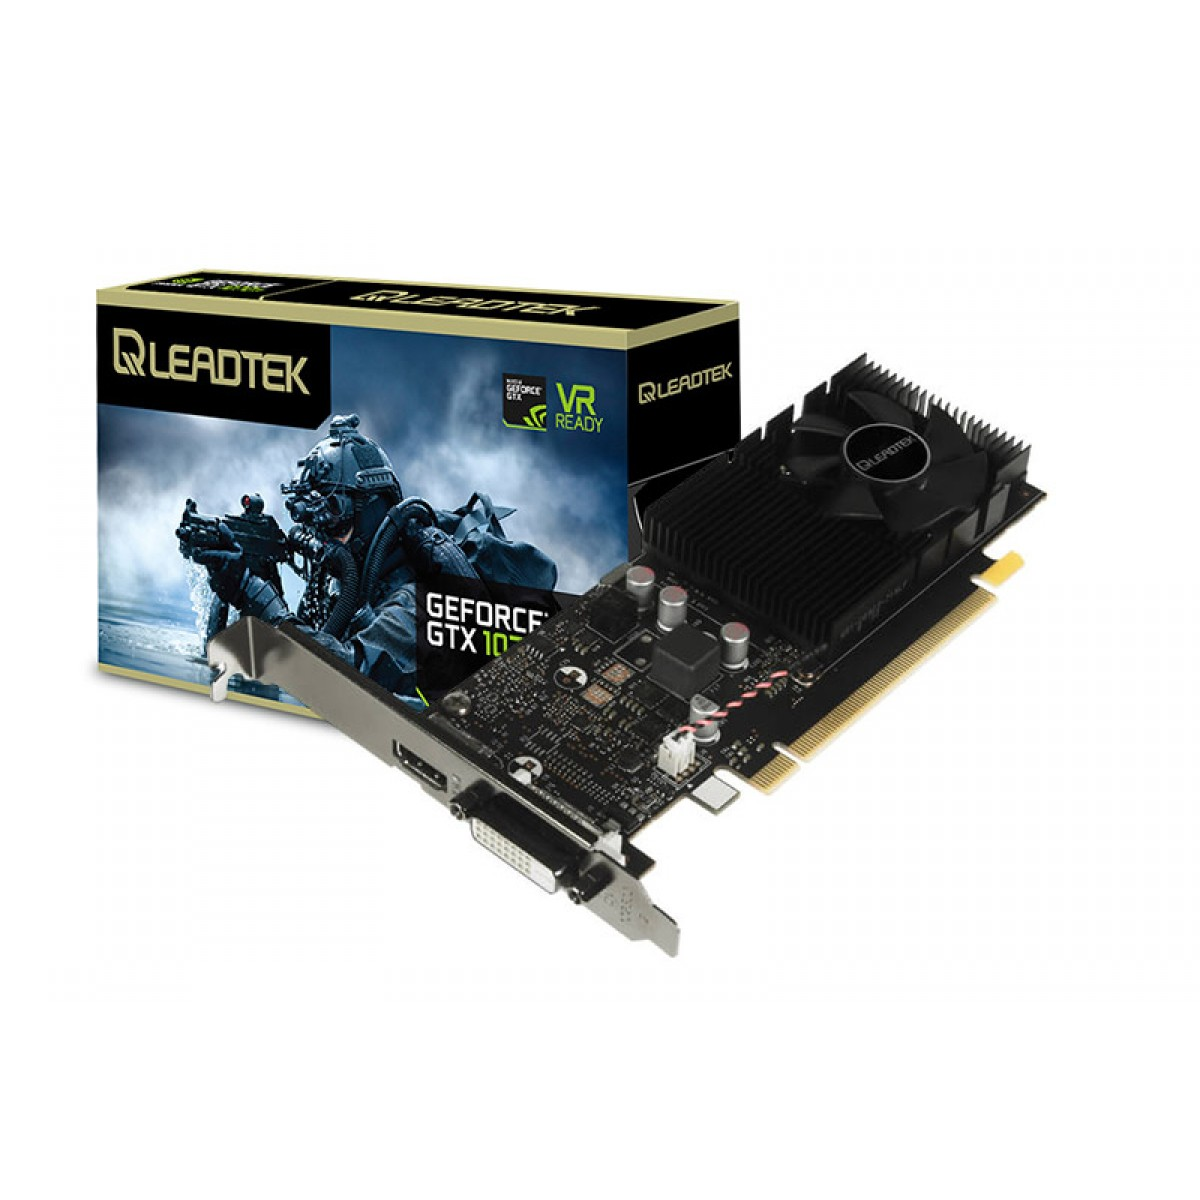 Placa de Vídeo Leadtek WinFast GeForce GT 1030, 2GB, GDDR5, 64bit